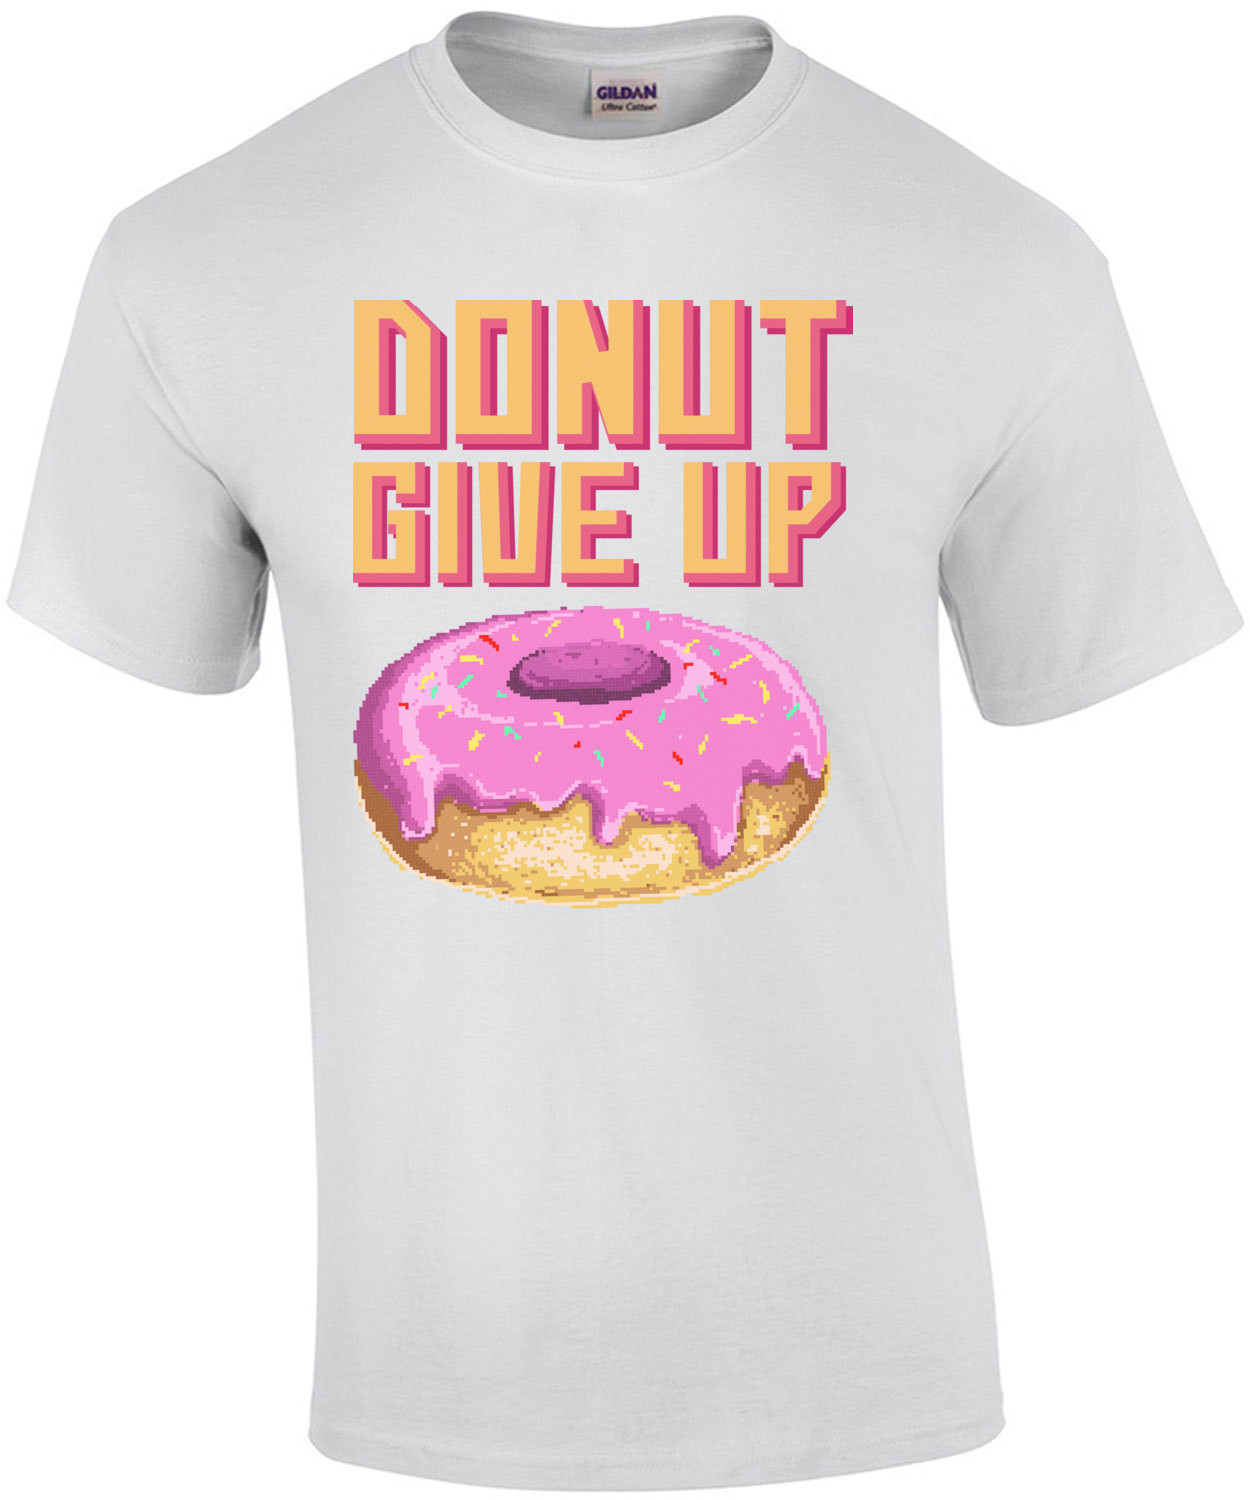 Donut Give Up T-Shirt